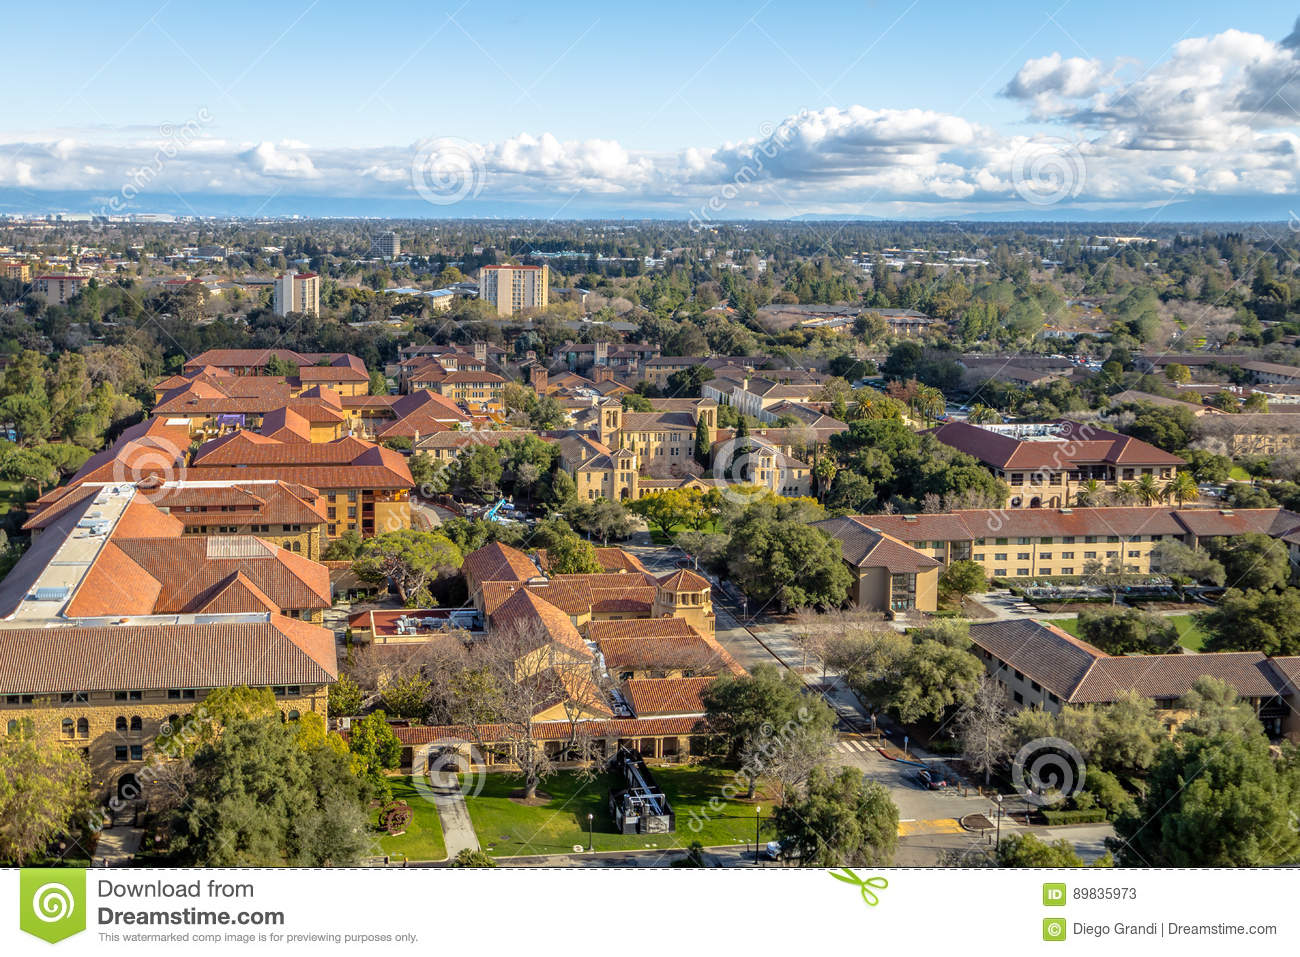 Vista aerea di Stanford University Campus - Palo Alto, California, U.S.A.